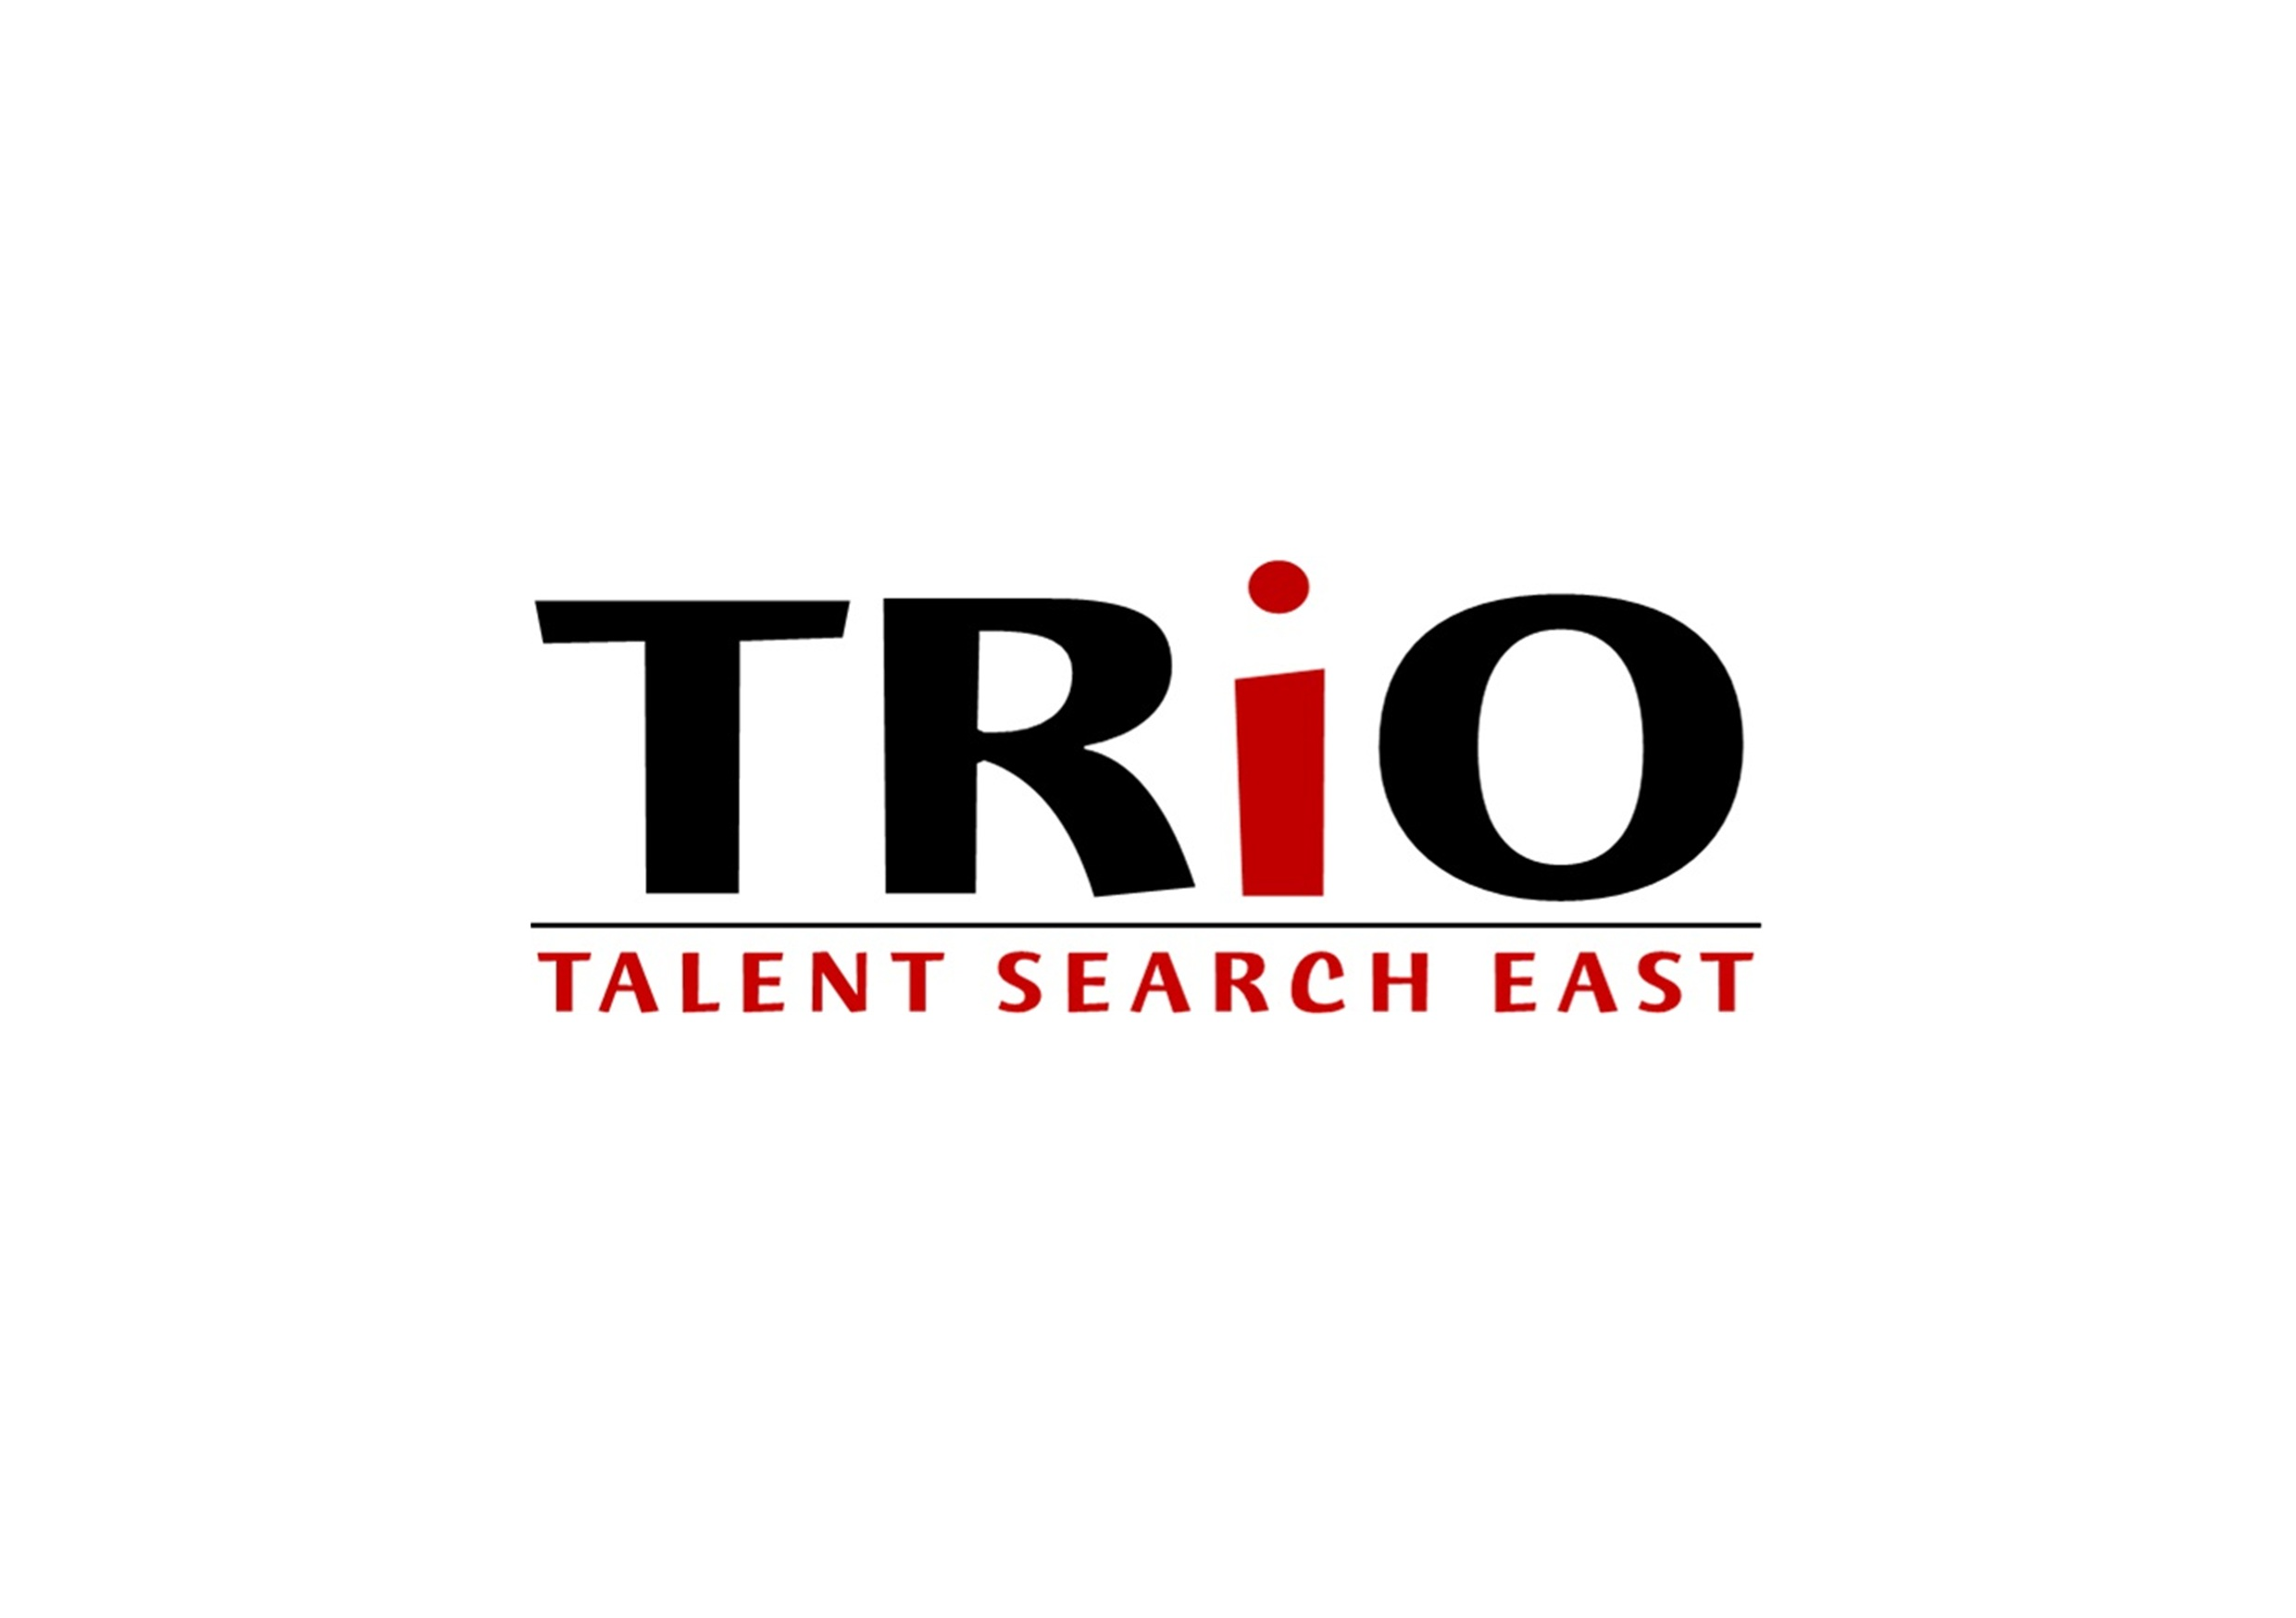 Talent Search East